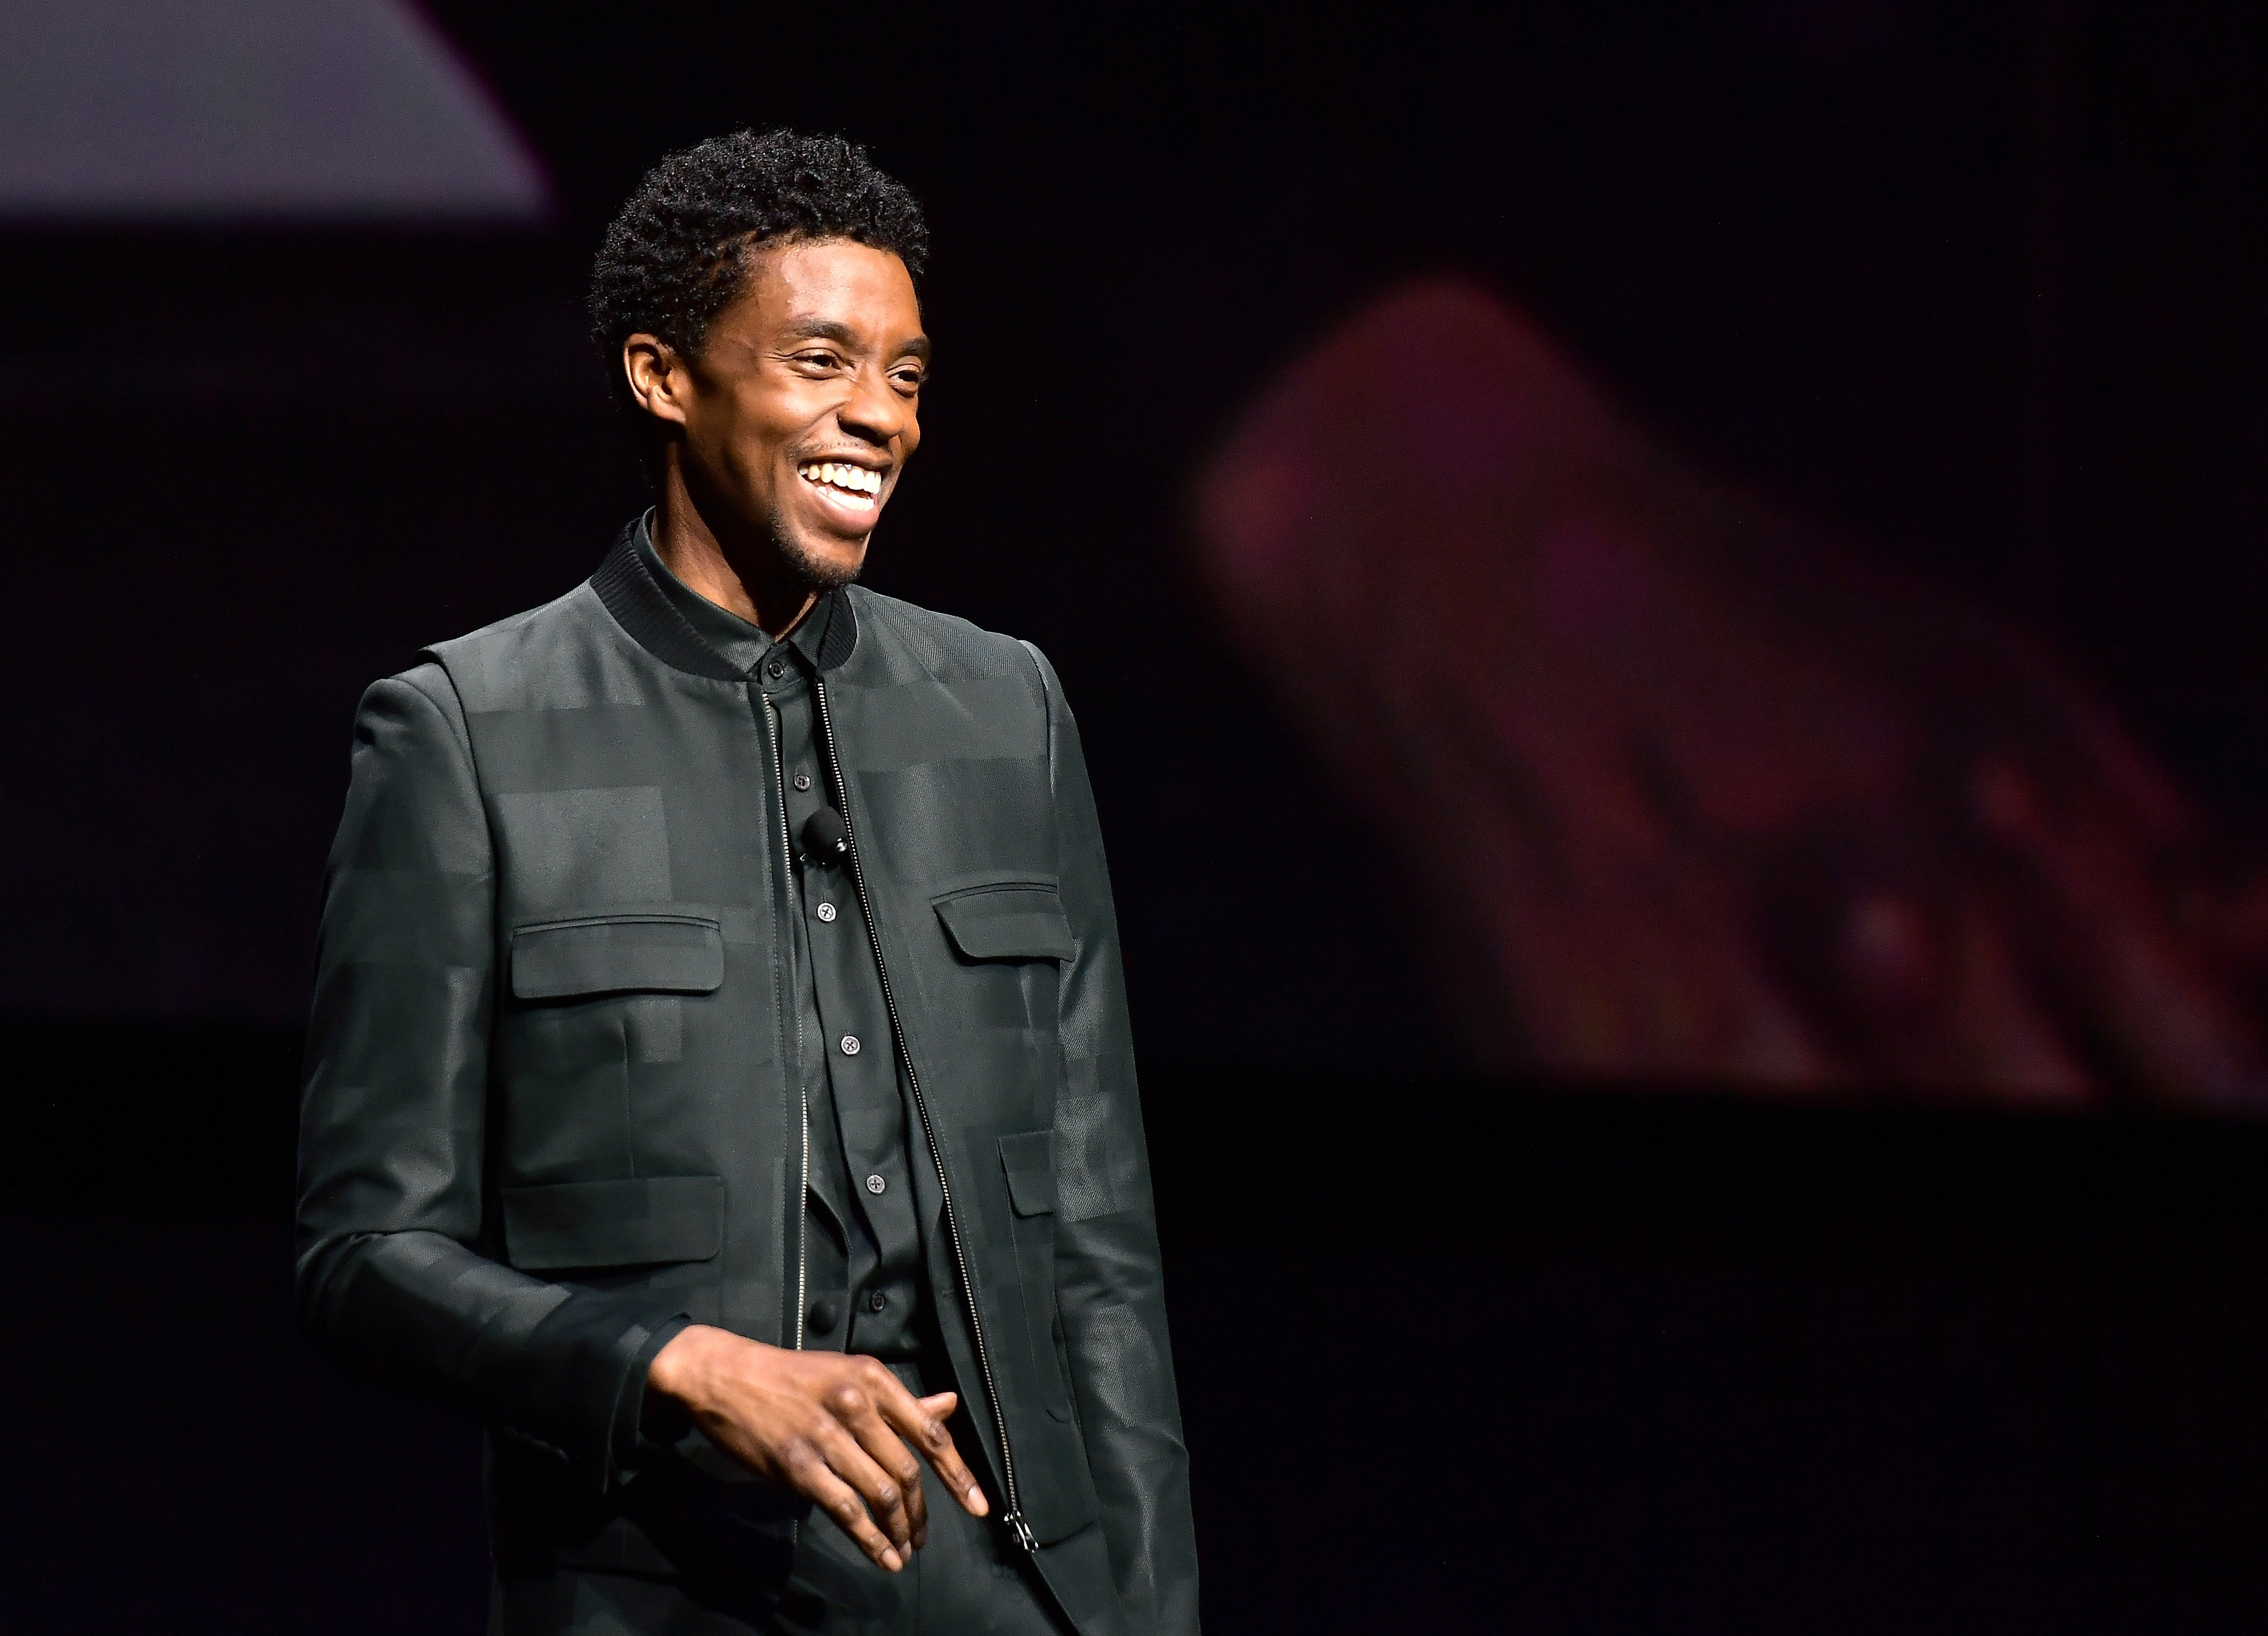 Image Credits: Getty Images / Matt Winkelmeyer | Chadwick Boseman speaks onstage at CinemaCon 2019 The State of the Industry and STXfilms Presentation at The Colosseum at Caesars Palace during CinemaCon, the official convention of the National Association of Theatre Owners, on April 2, 2019 in Las Vegas, Nevada.